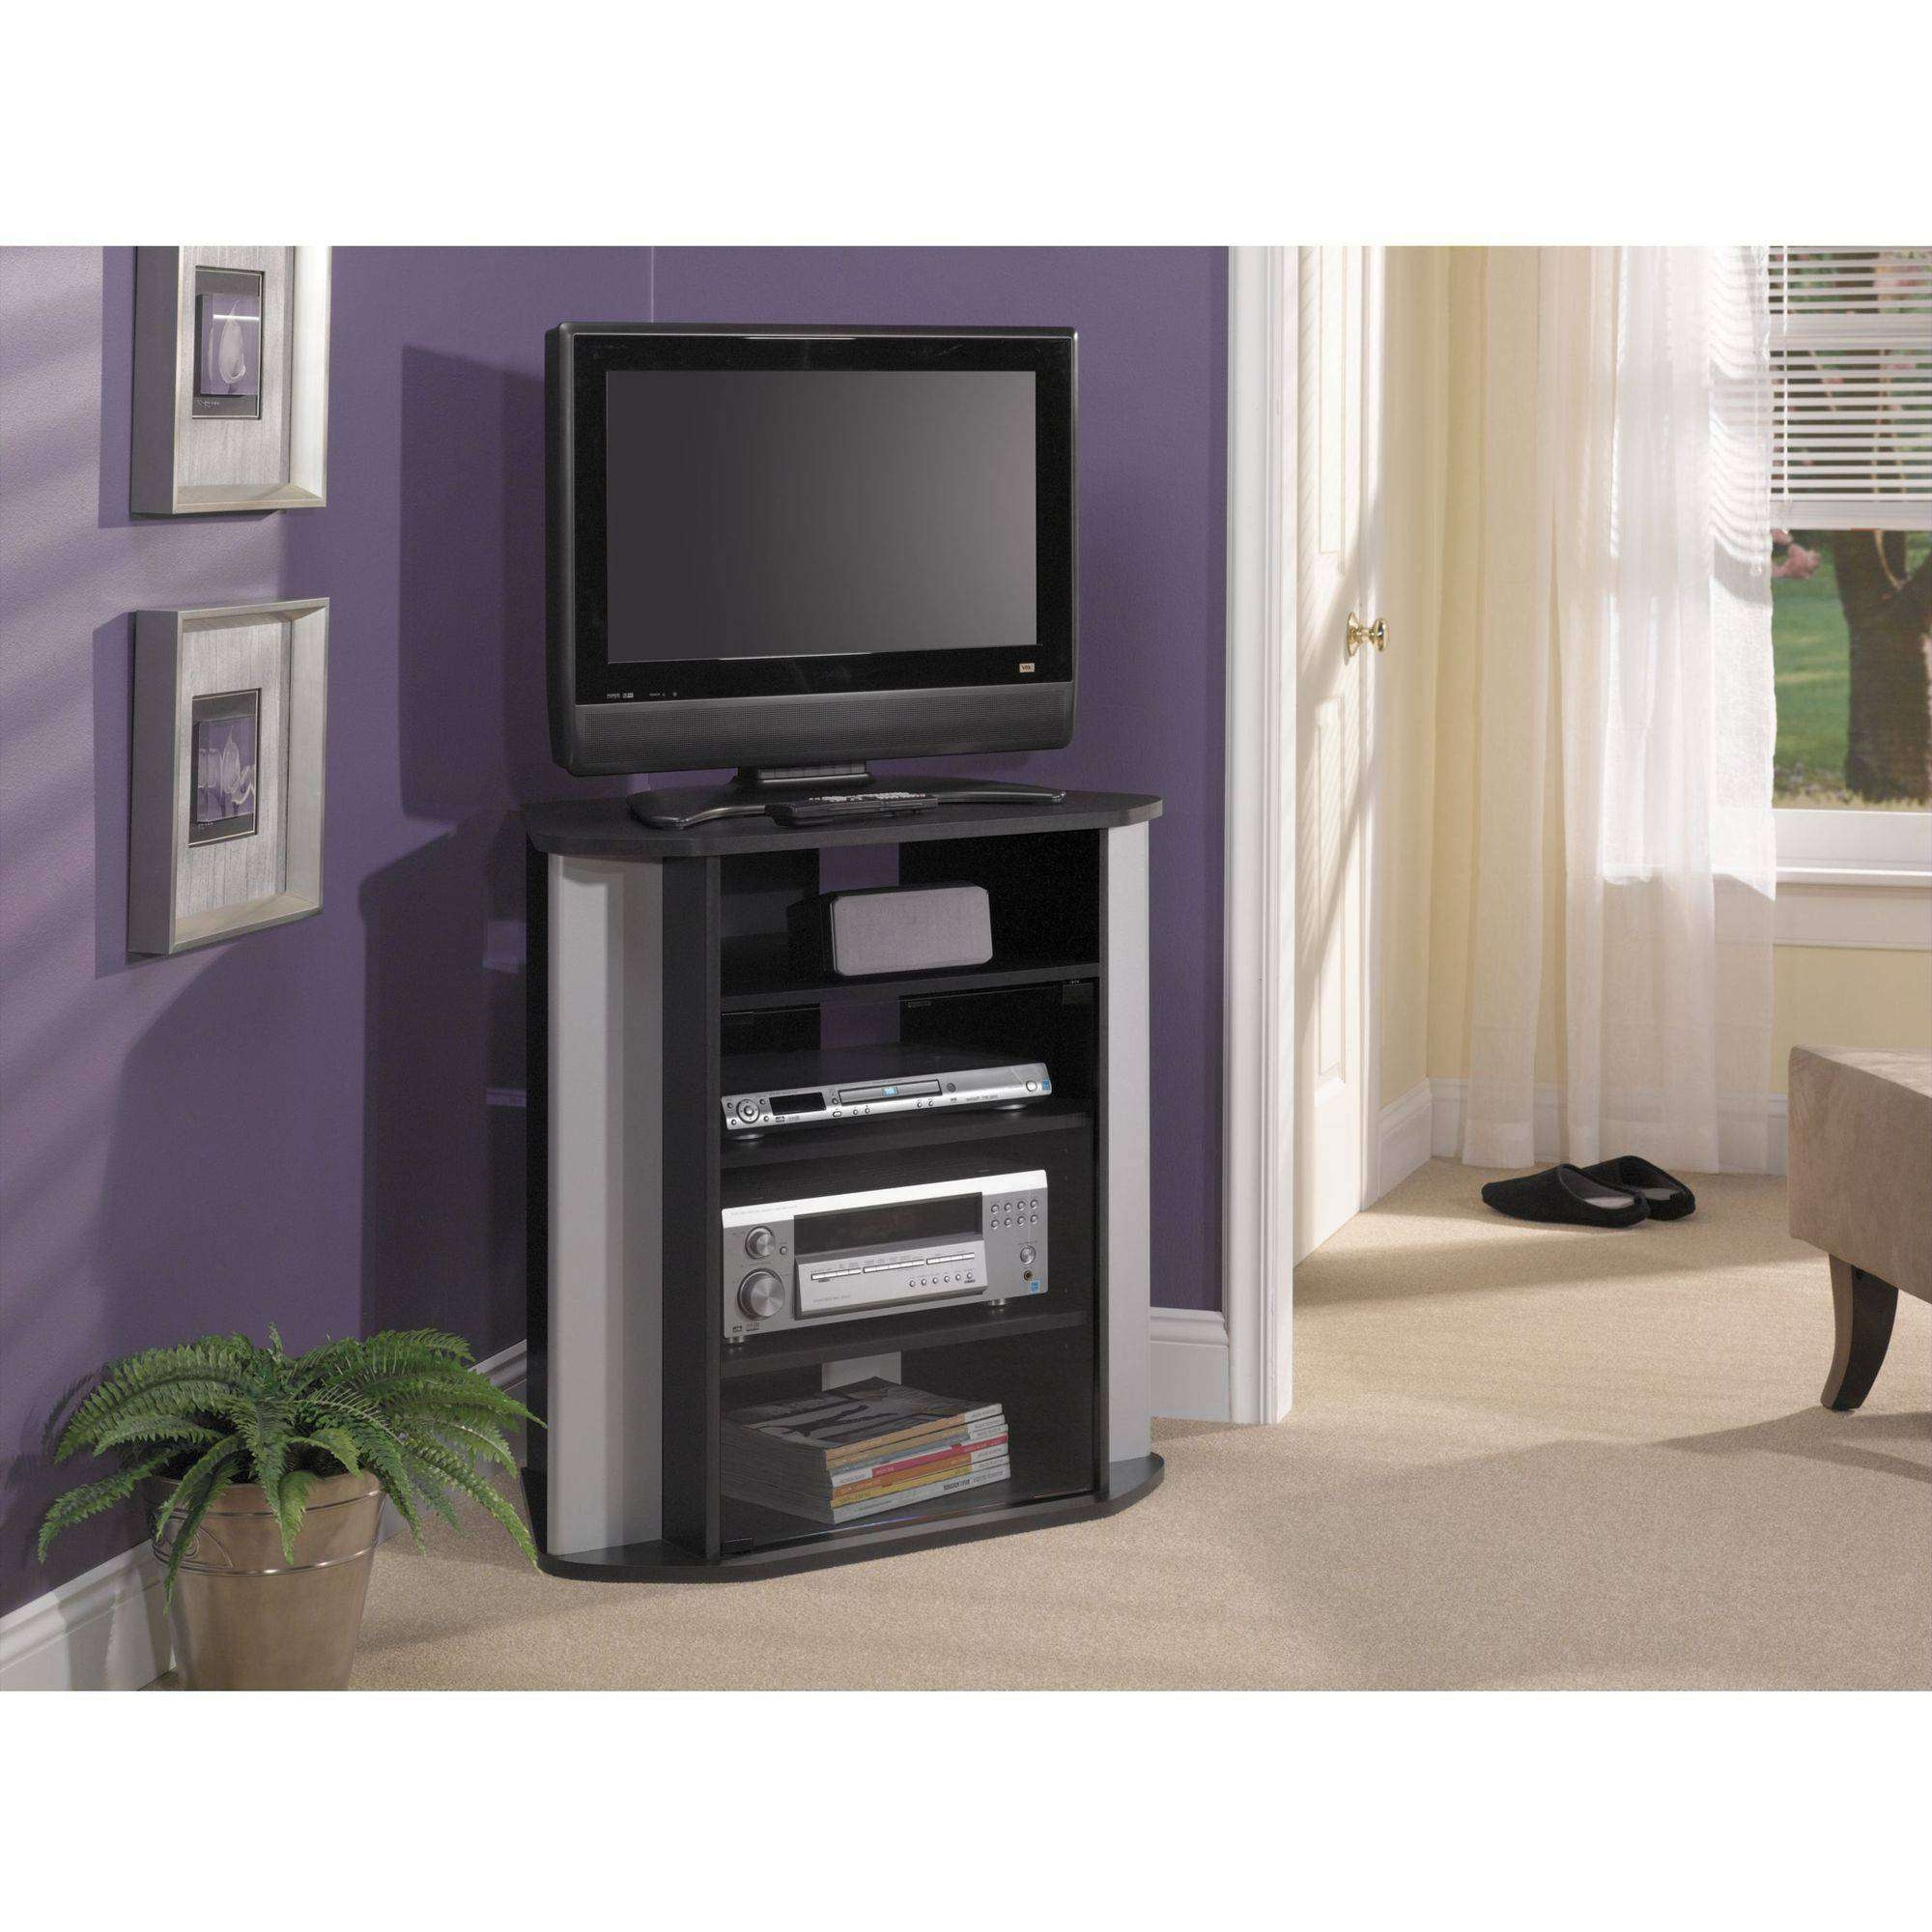 Bush Visions Black Tall Corner Tv Stand, For Tvs Up To 37 Throughout Black Wood Corner Tv Stands (View 12 of 15)